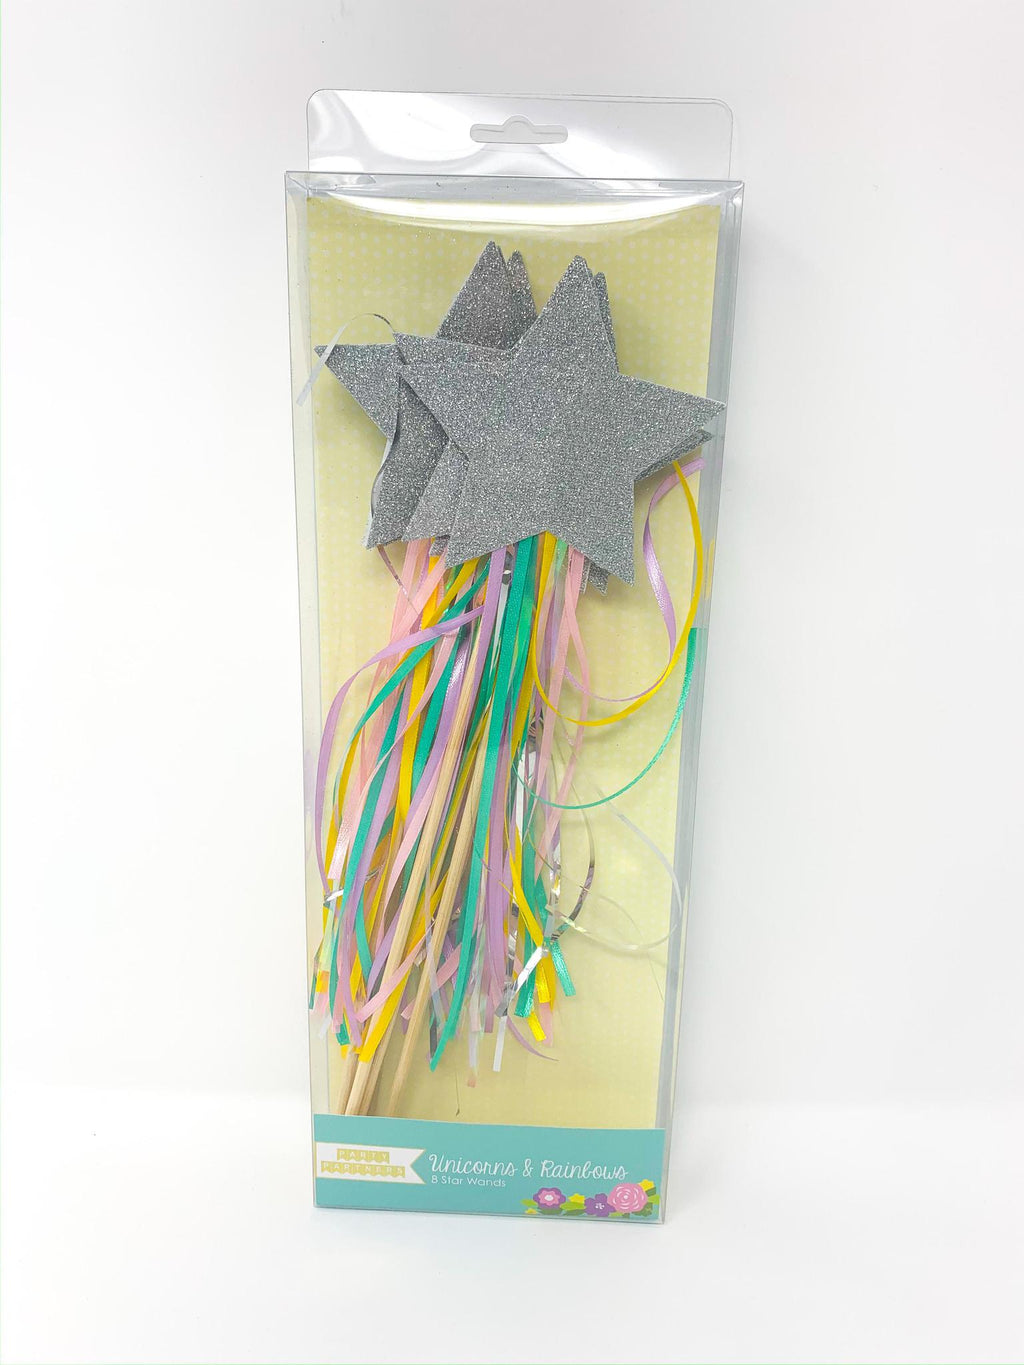 GLITTER RAINBOW STAR WANDS